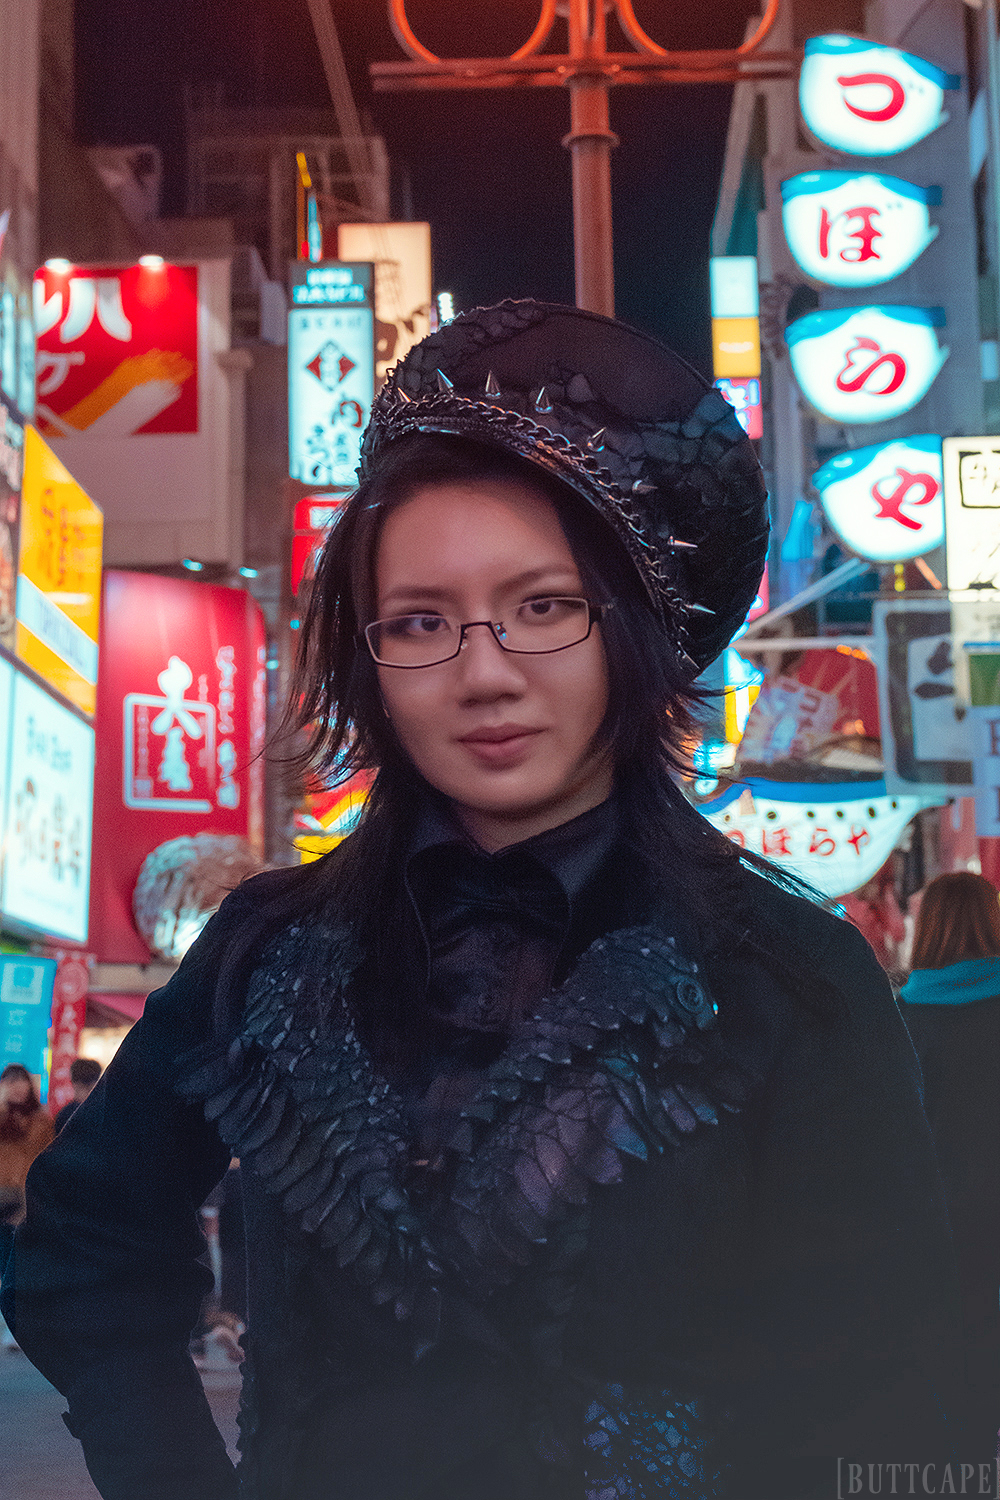 My new profile picture was taken at Dontonbori in Osaka | Photo:  Going Grimy , Edit: Buttcape